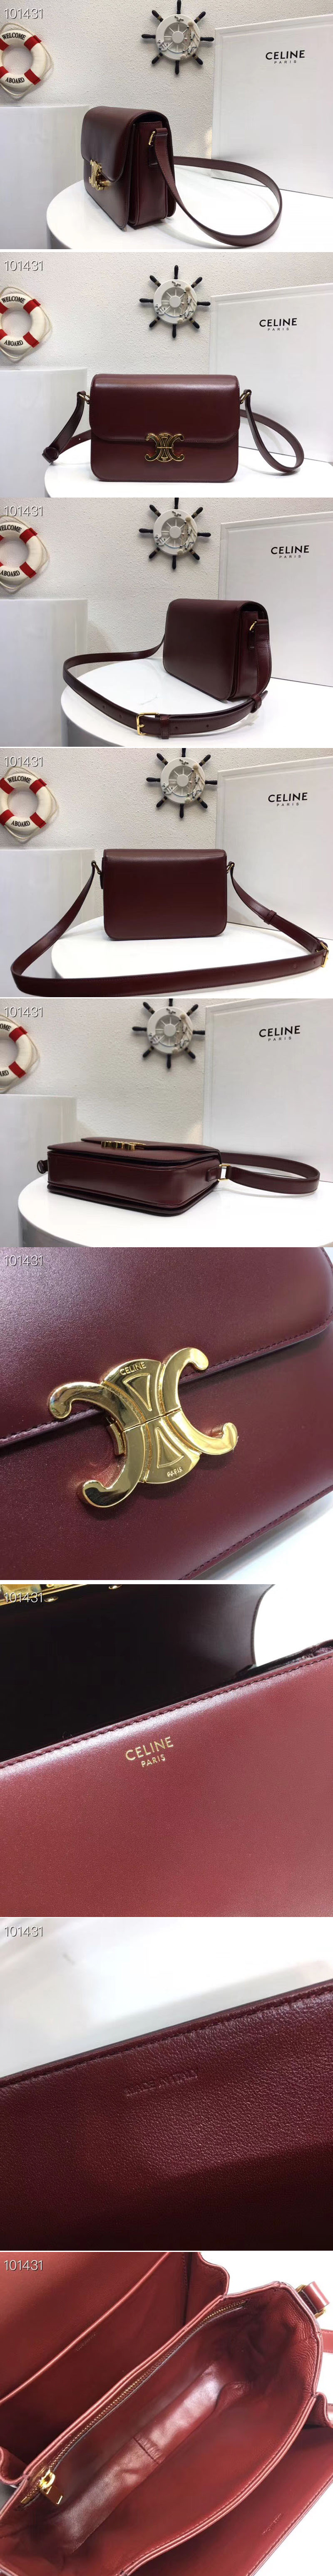 Replica Celine Medium Triomphe Bags Wine Shiny Calfskin